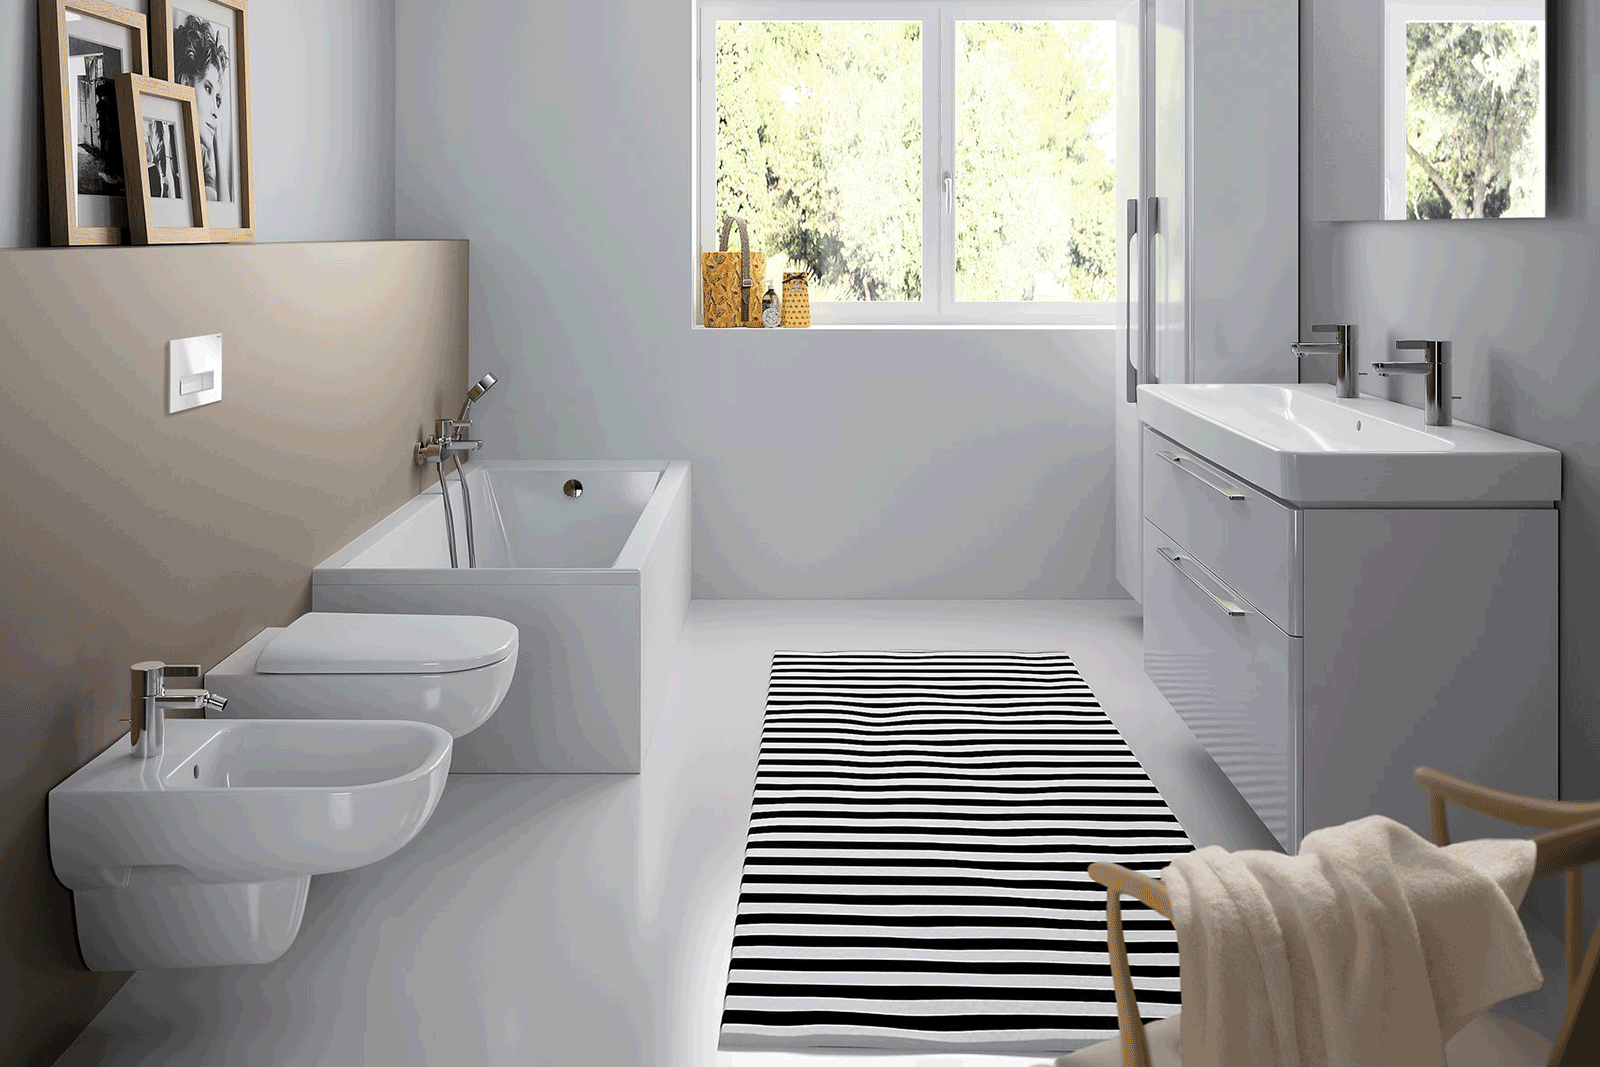 Geberit smyle bathroom roomset